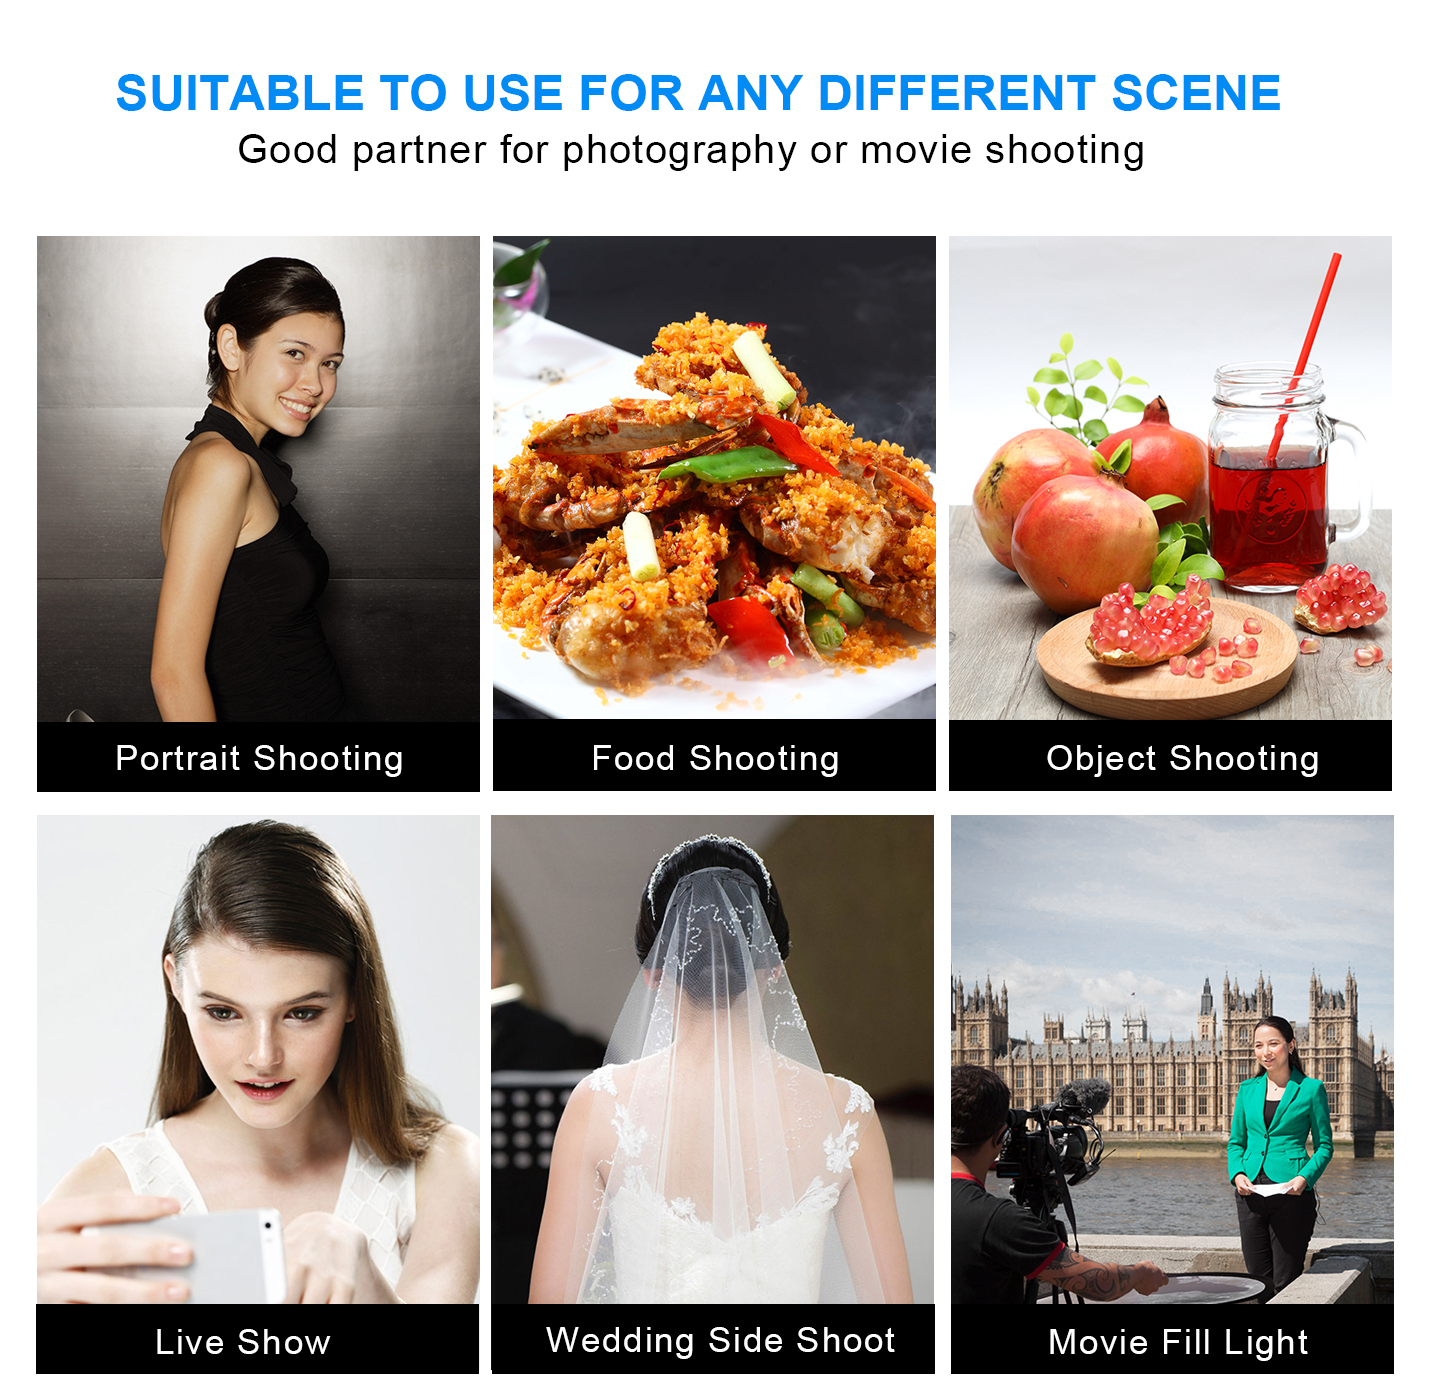 SULTABLE TO USE FOR ANY DIFFERNET SCENE